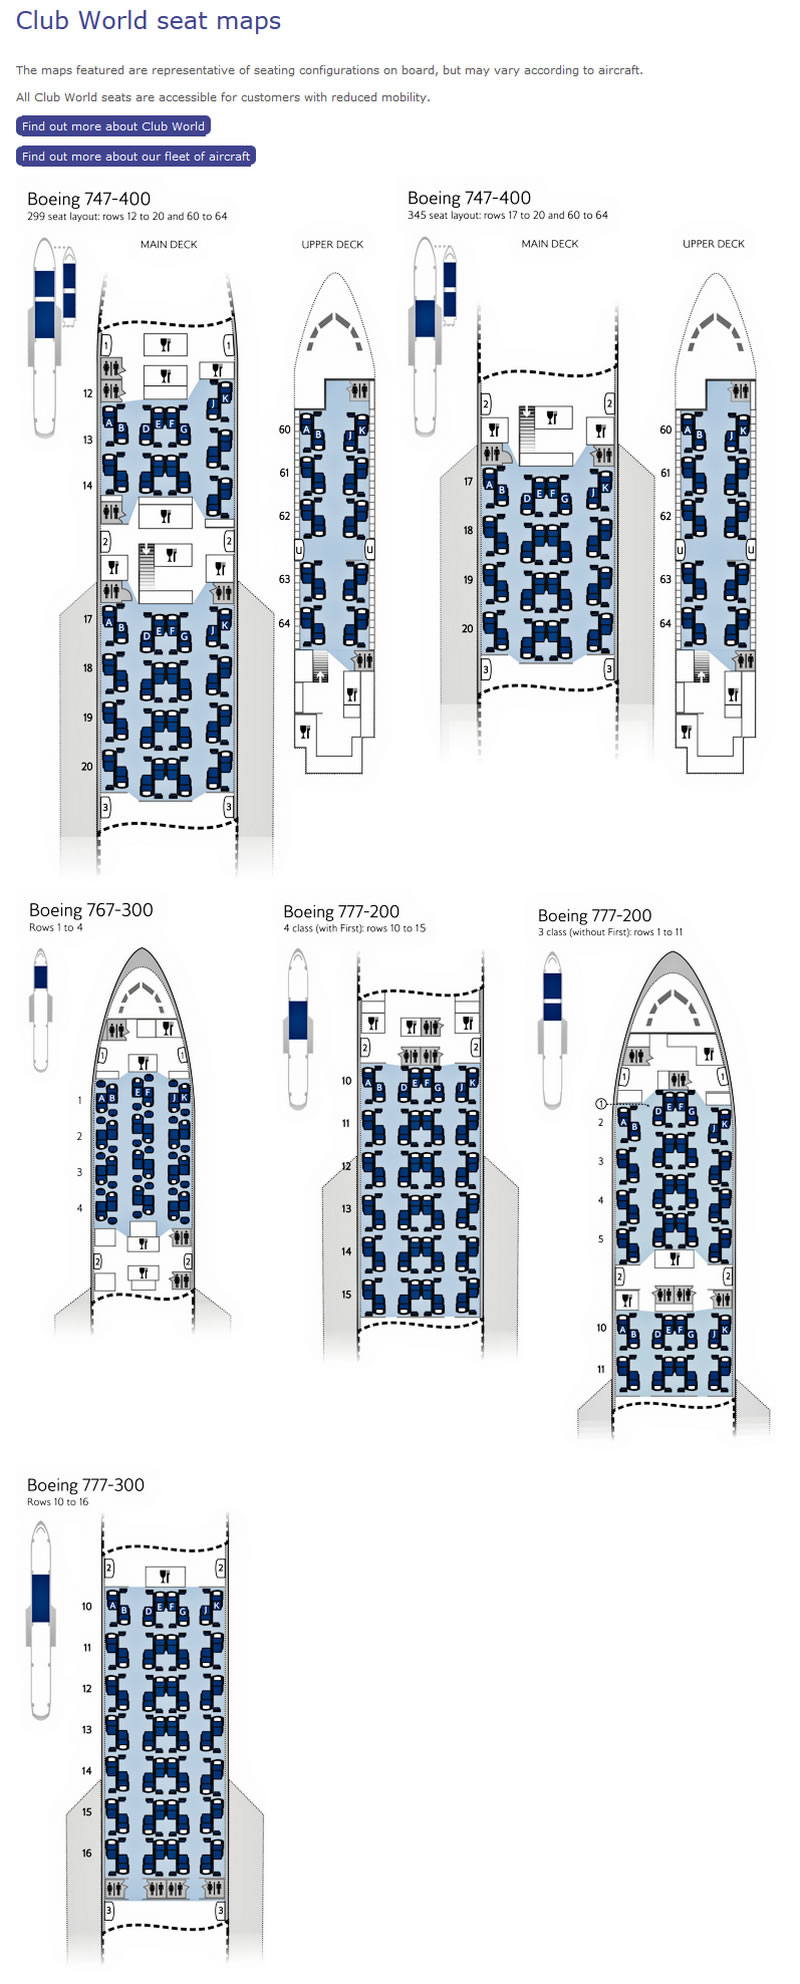 British Airways Airlines Aircraft Seatmaps Airline Seating - Us airways seat map